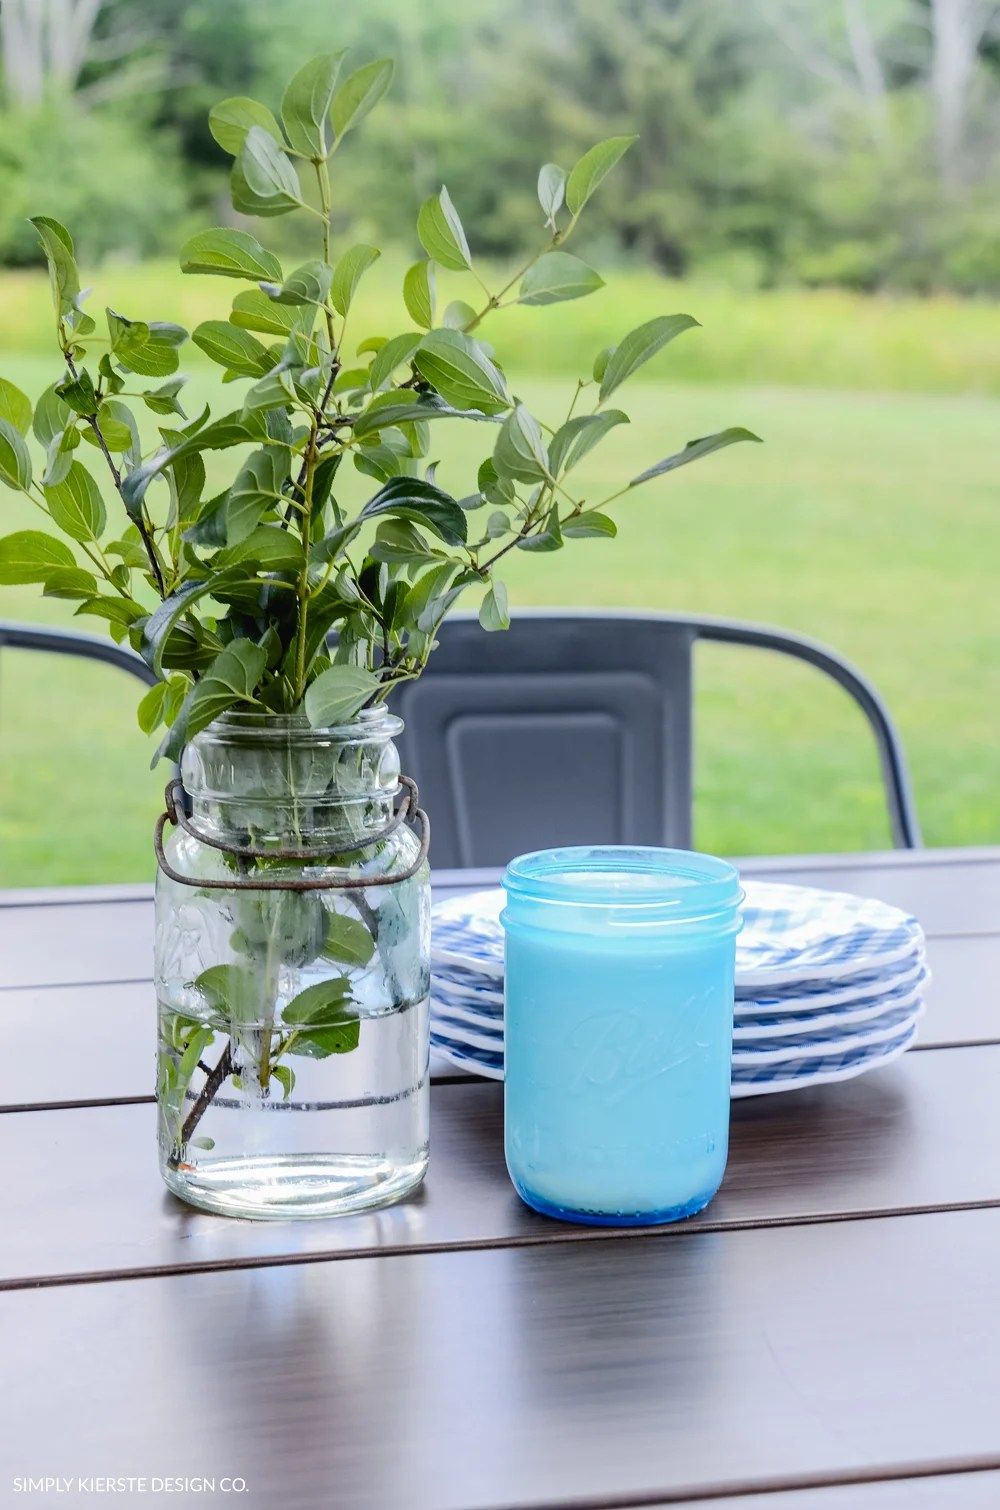 How to Make Farmhouse Style Mason Jar Citronella Candles | oldsaltfarm.com